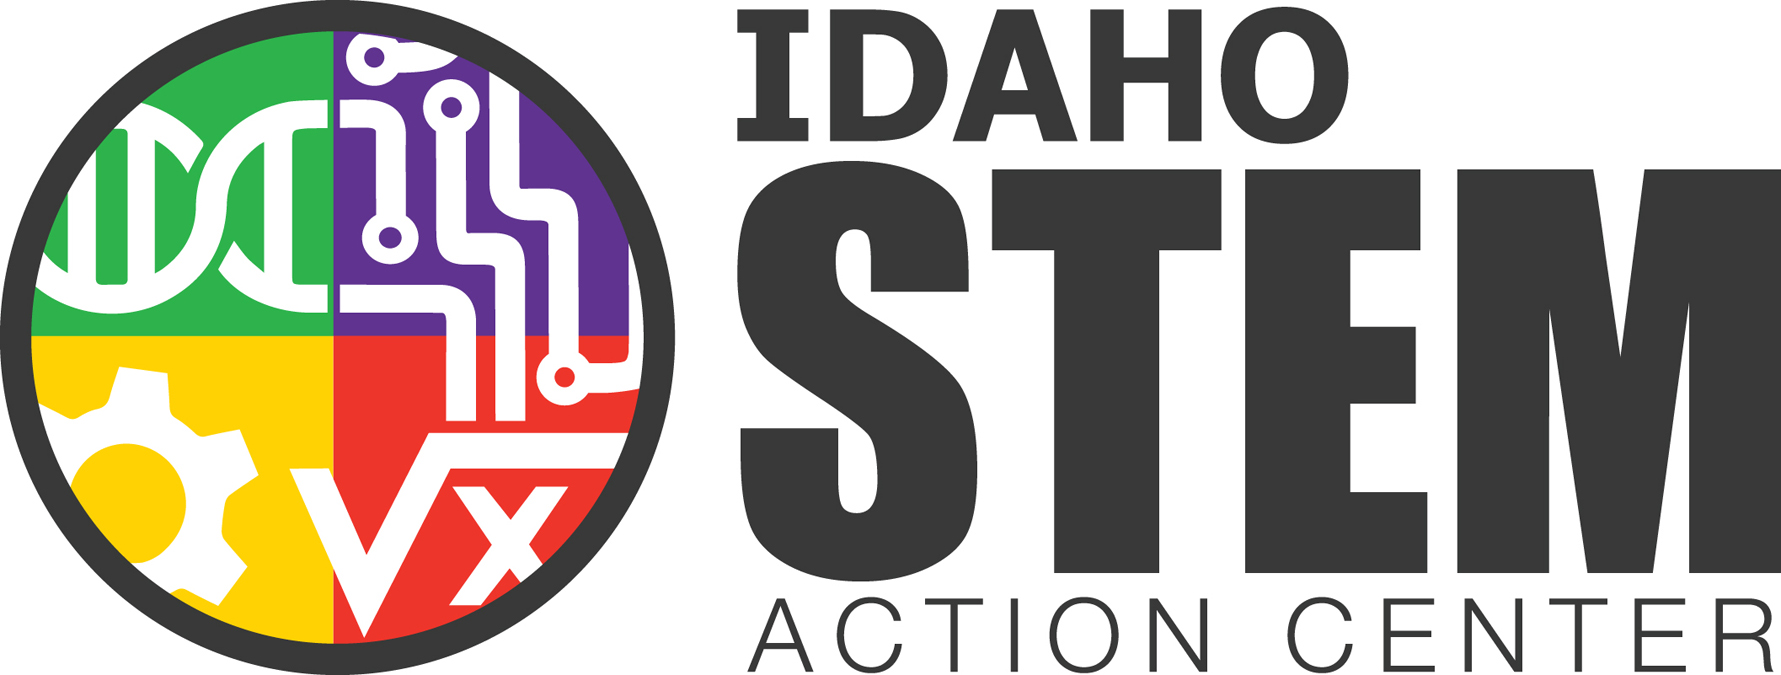 Idaho STEM Action center